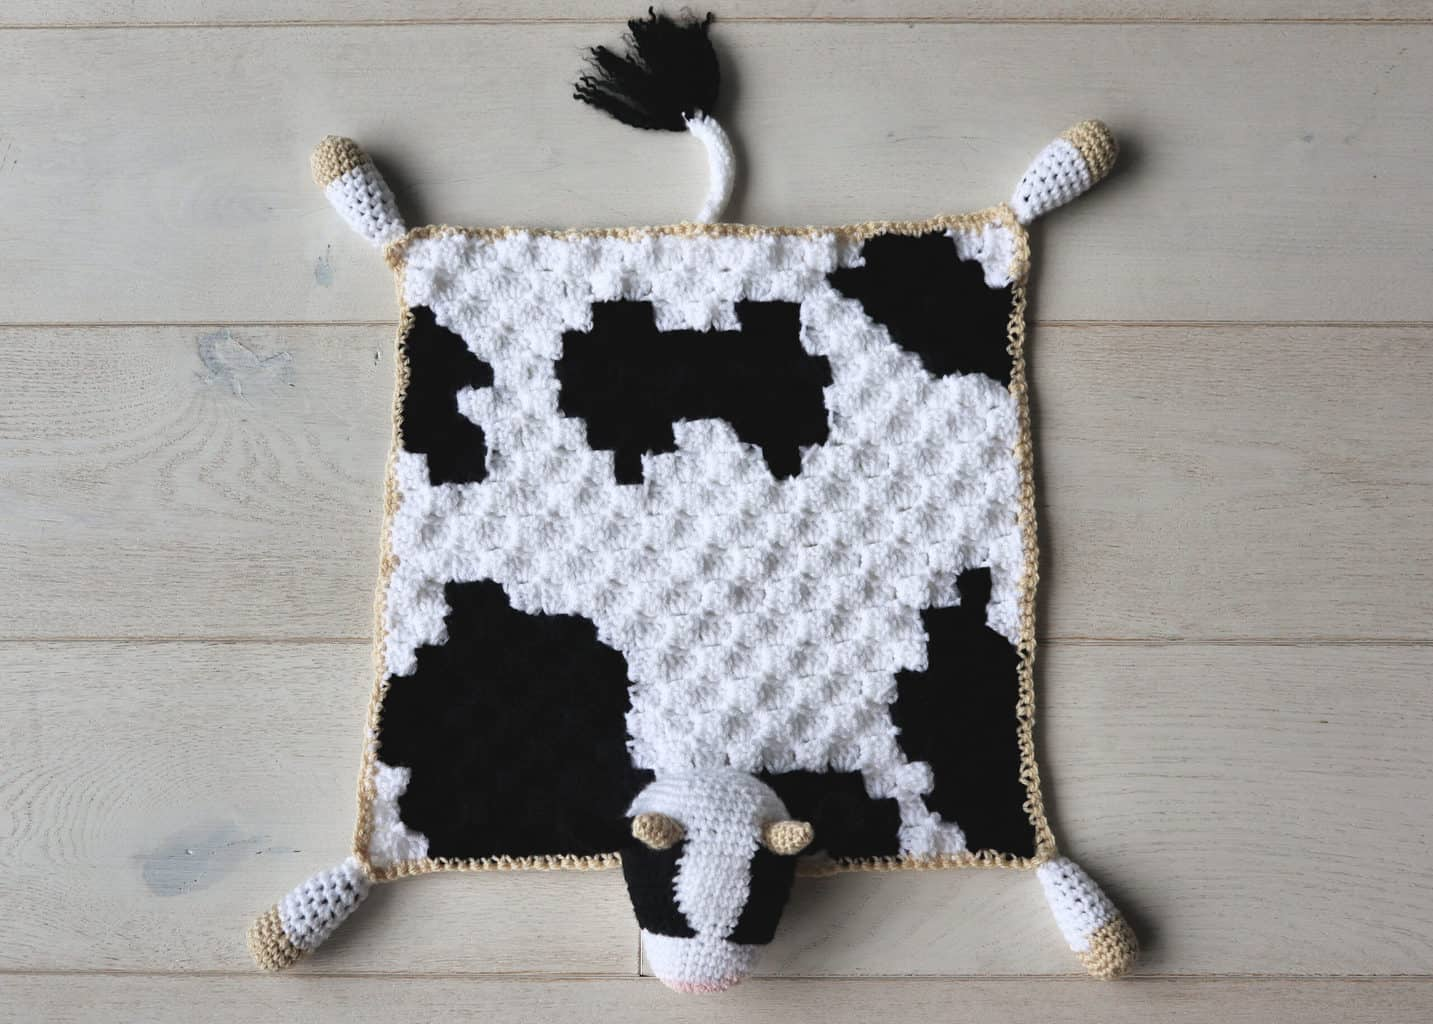 Bessie The Cow Lovey Crochet Baby Blanket Pattern The Snugglery